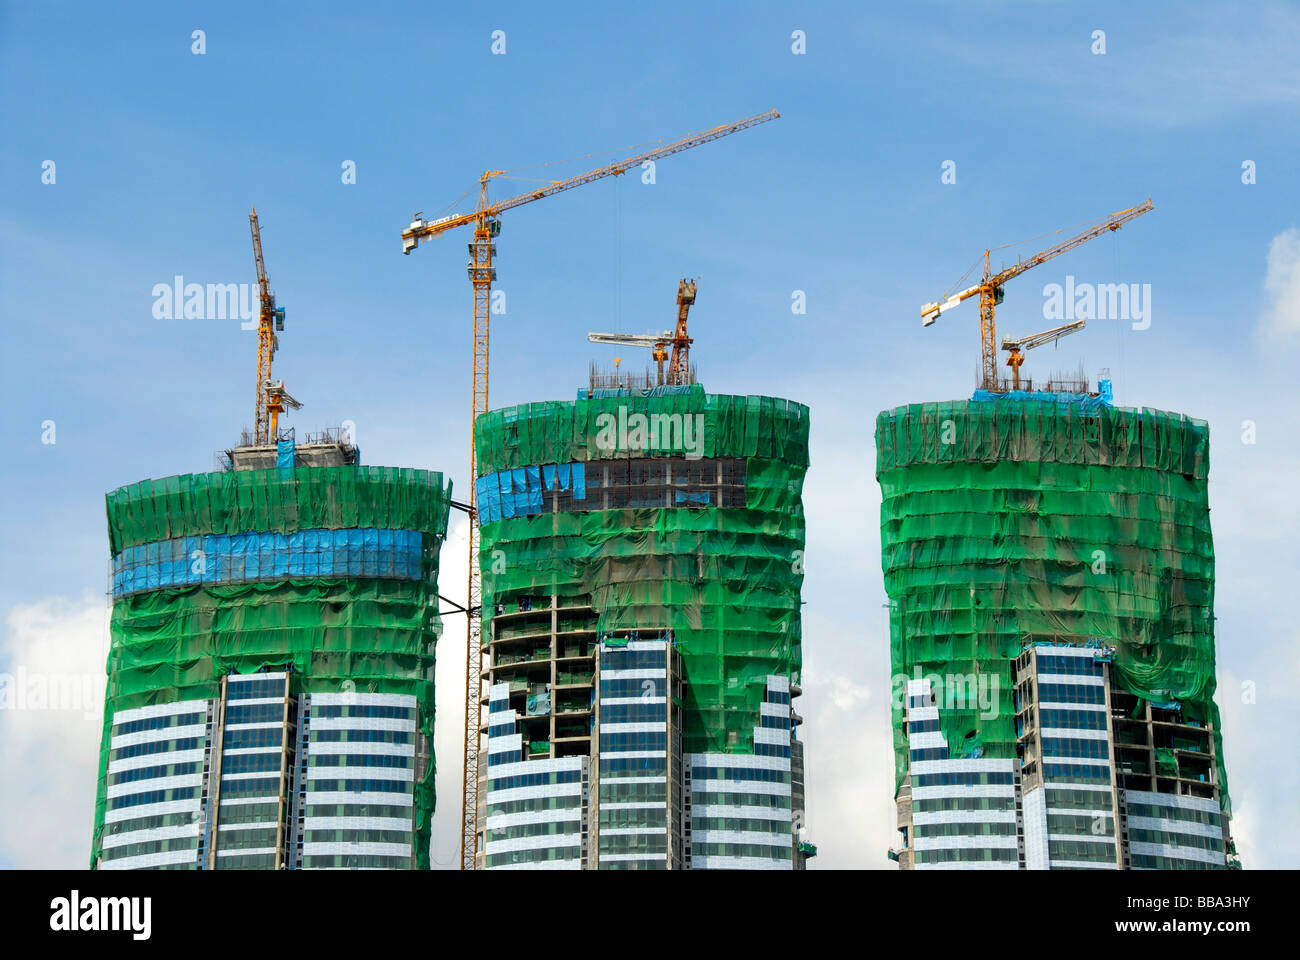 Skyscrapers, building site, cranes on three modern skyscrapers, Bangkok, Thailand, Southeast Asia - Stock Image